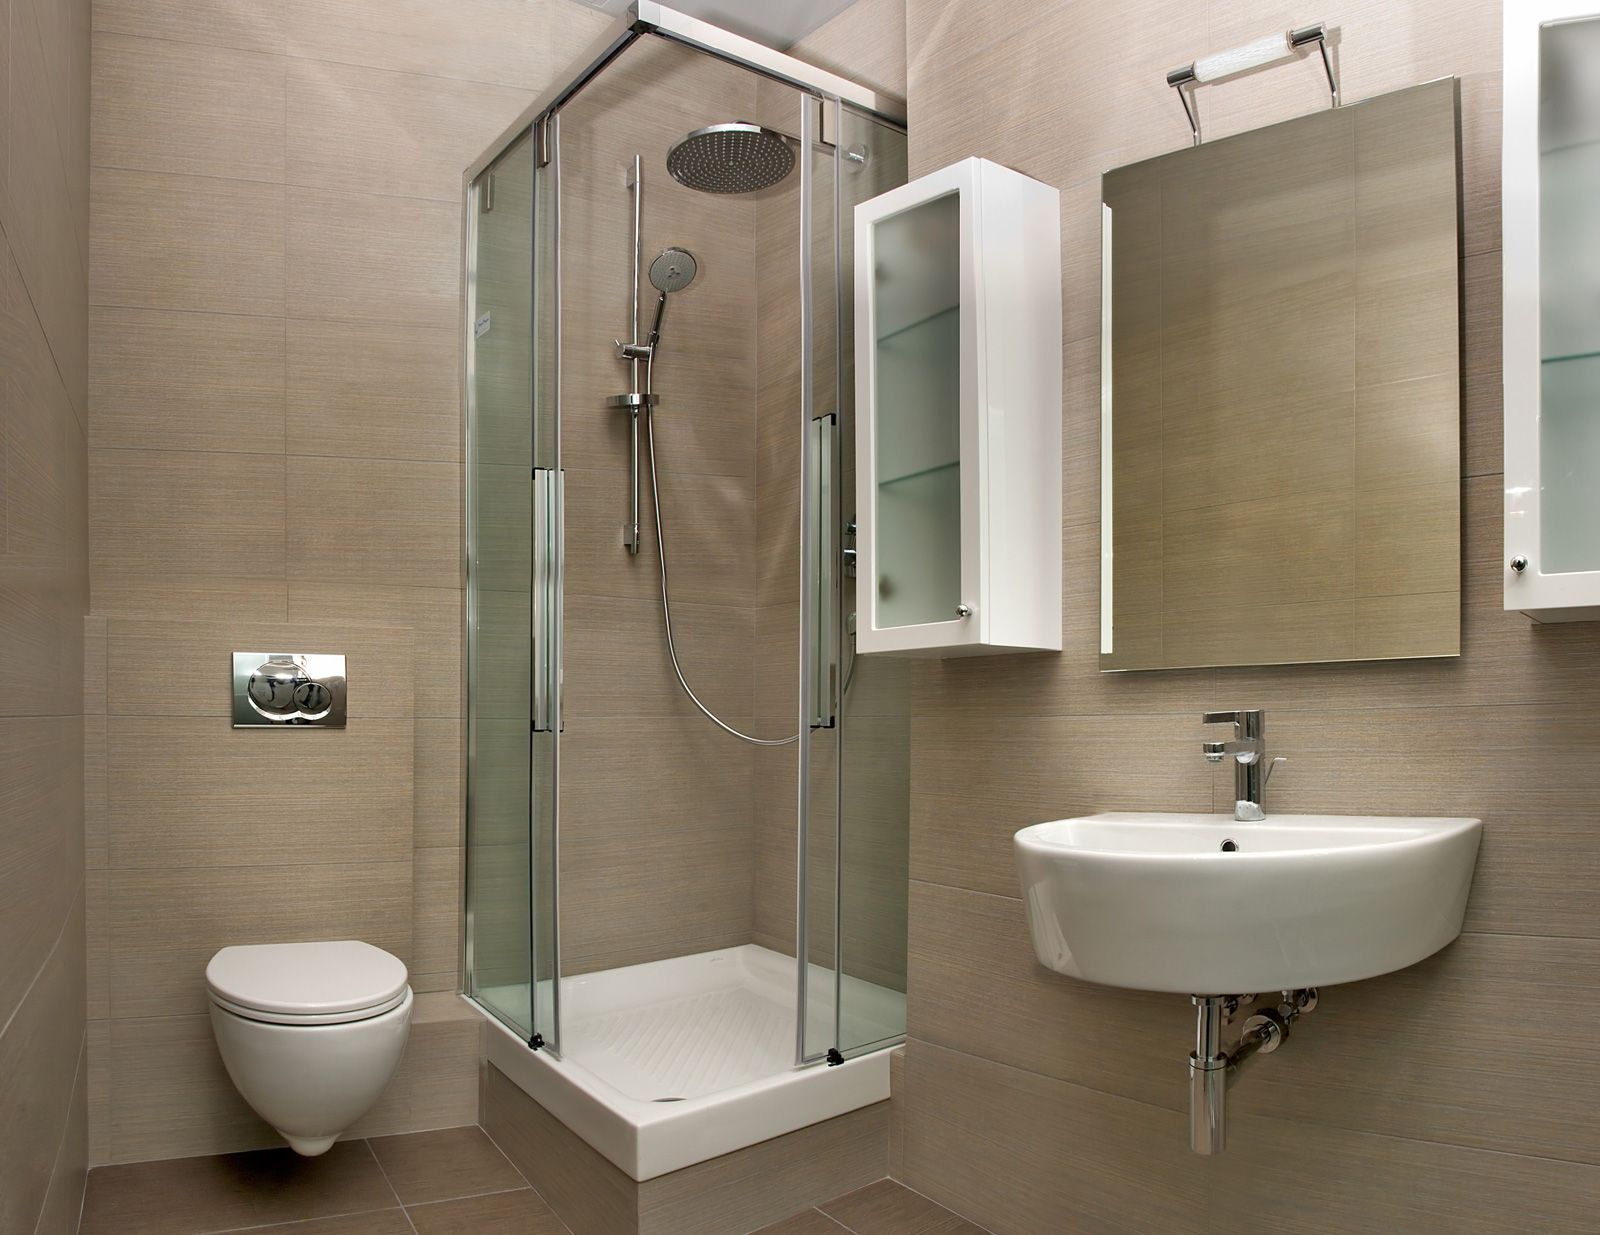 shower ideas for small bathroom to inspire you on how to decorate your bathroom 924963